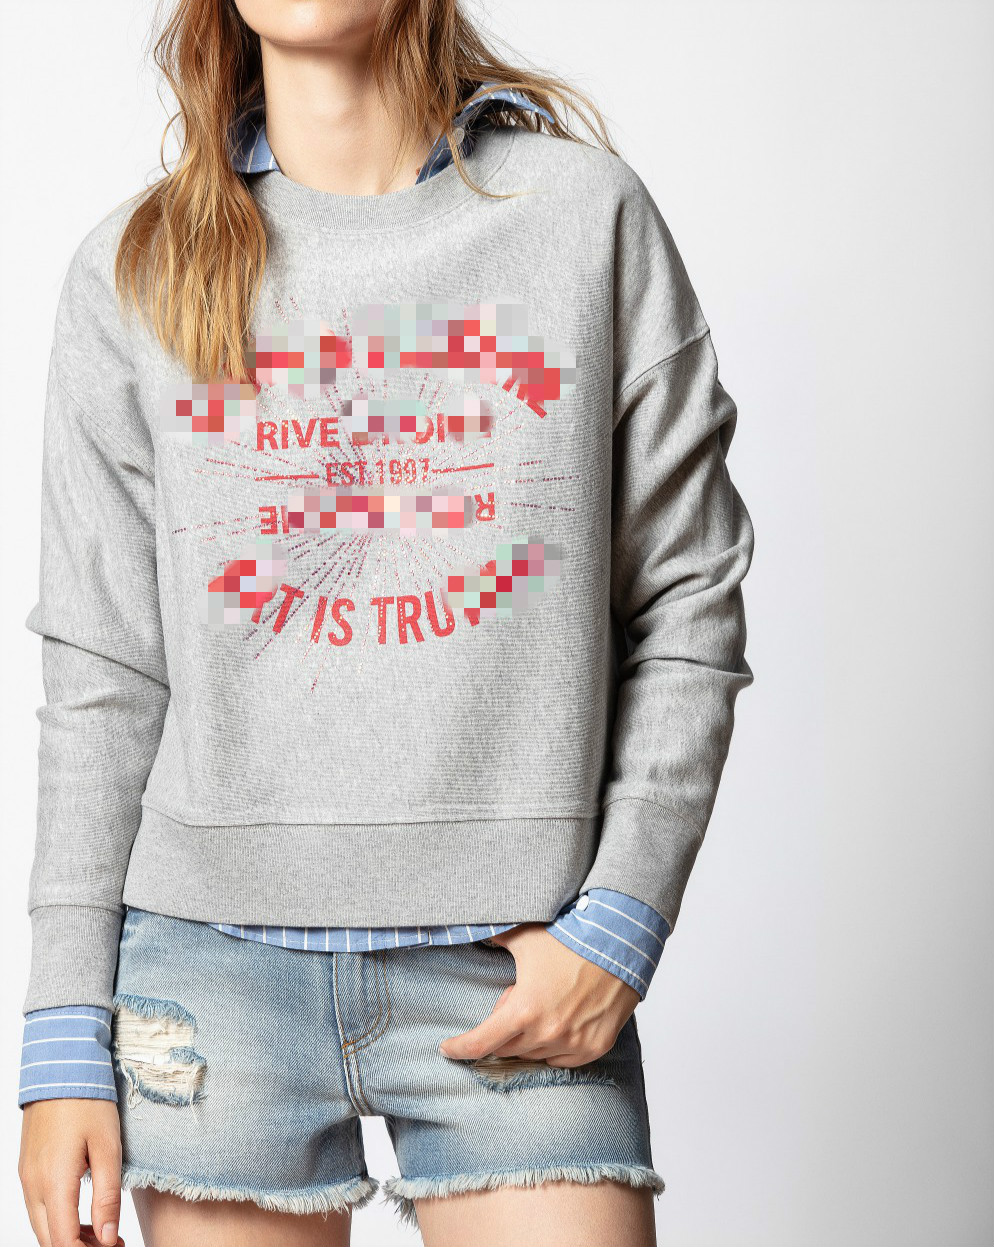 Women Hoodie 2019 Autumn/Winter New Letter Printing Hot Drilling Cotton Women Hoodies